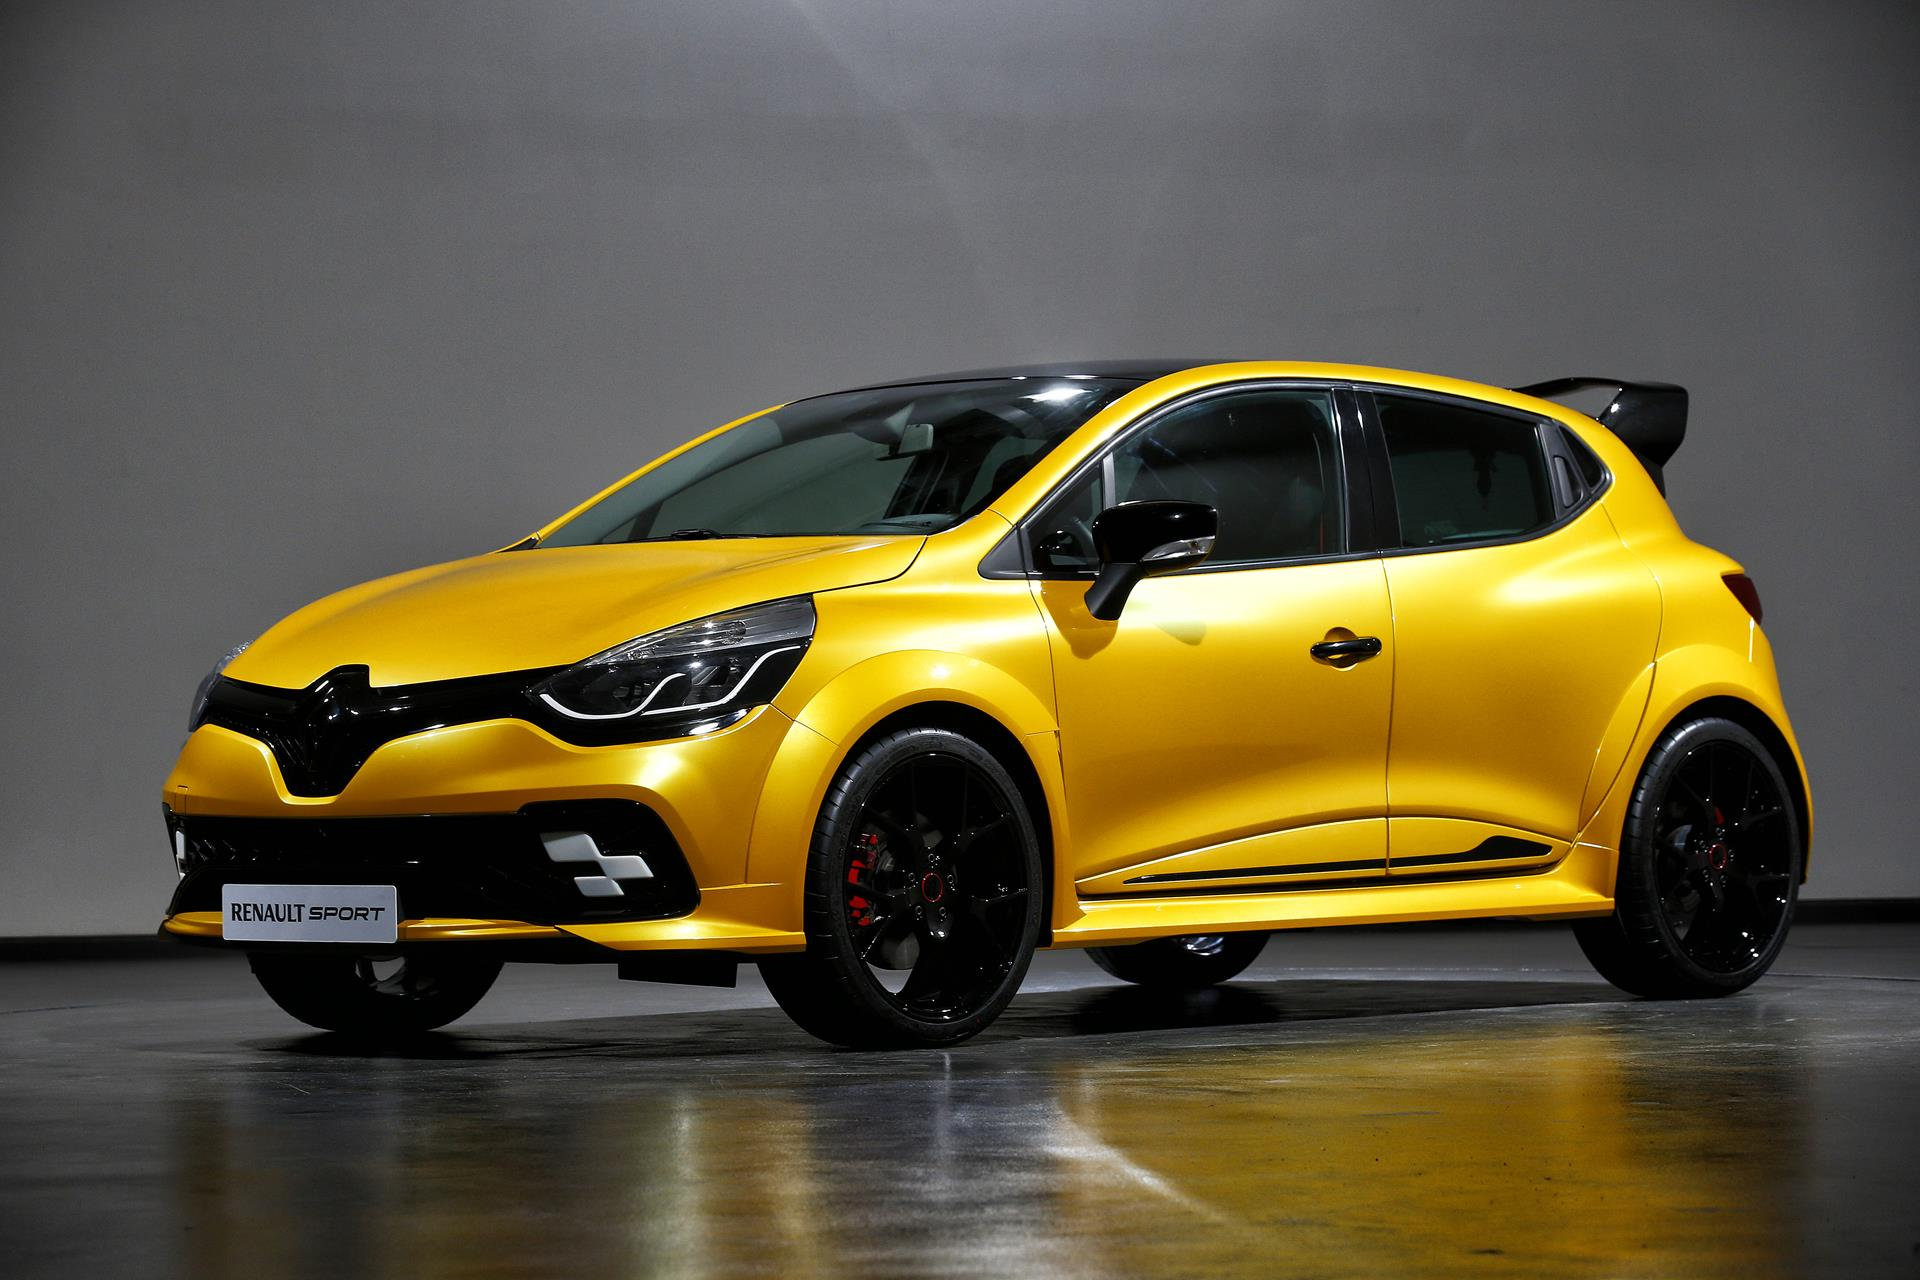 2016 renault clio r concept news and information. Black Bedroom Furniture Sets. Home Design Ideas